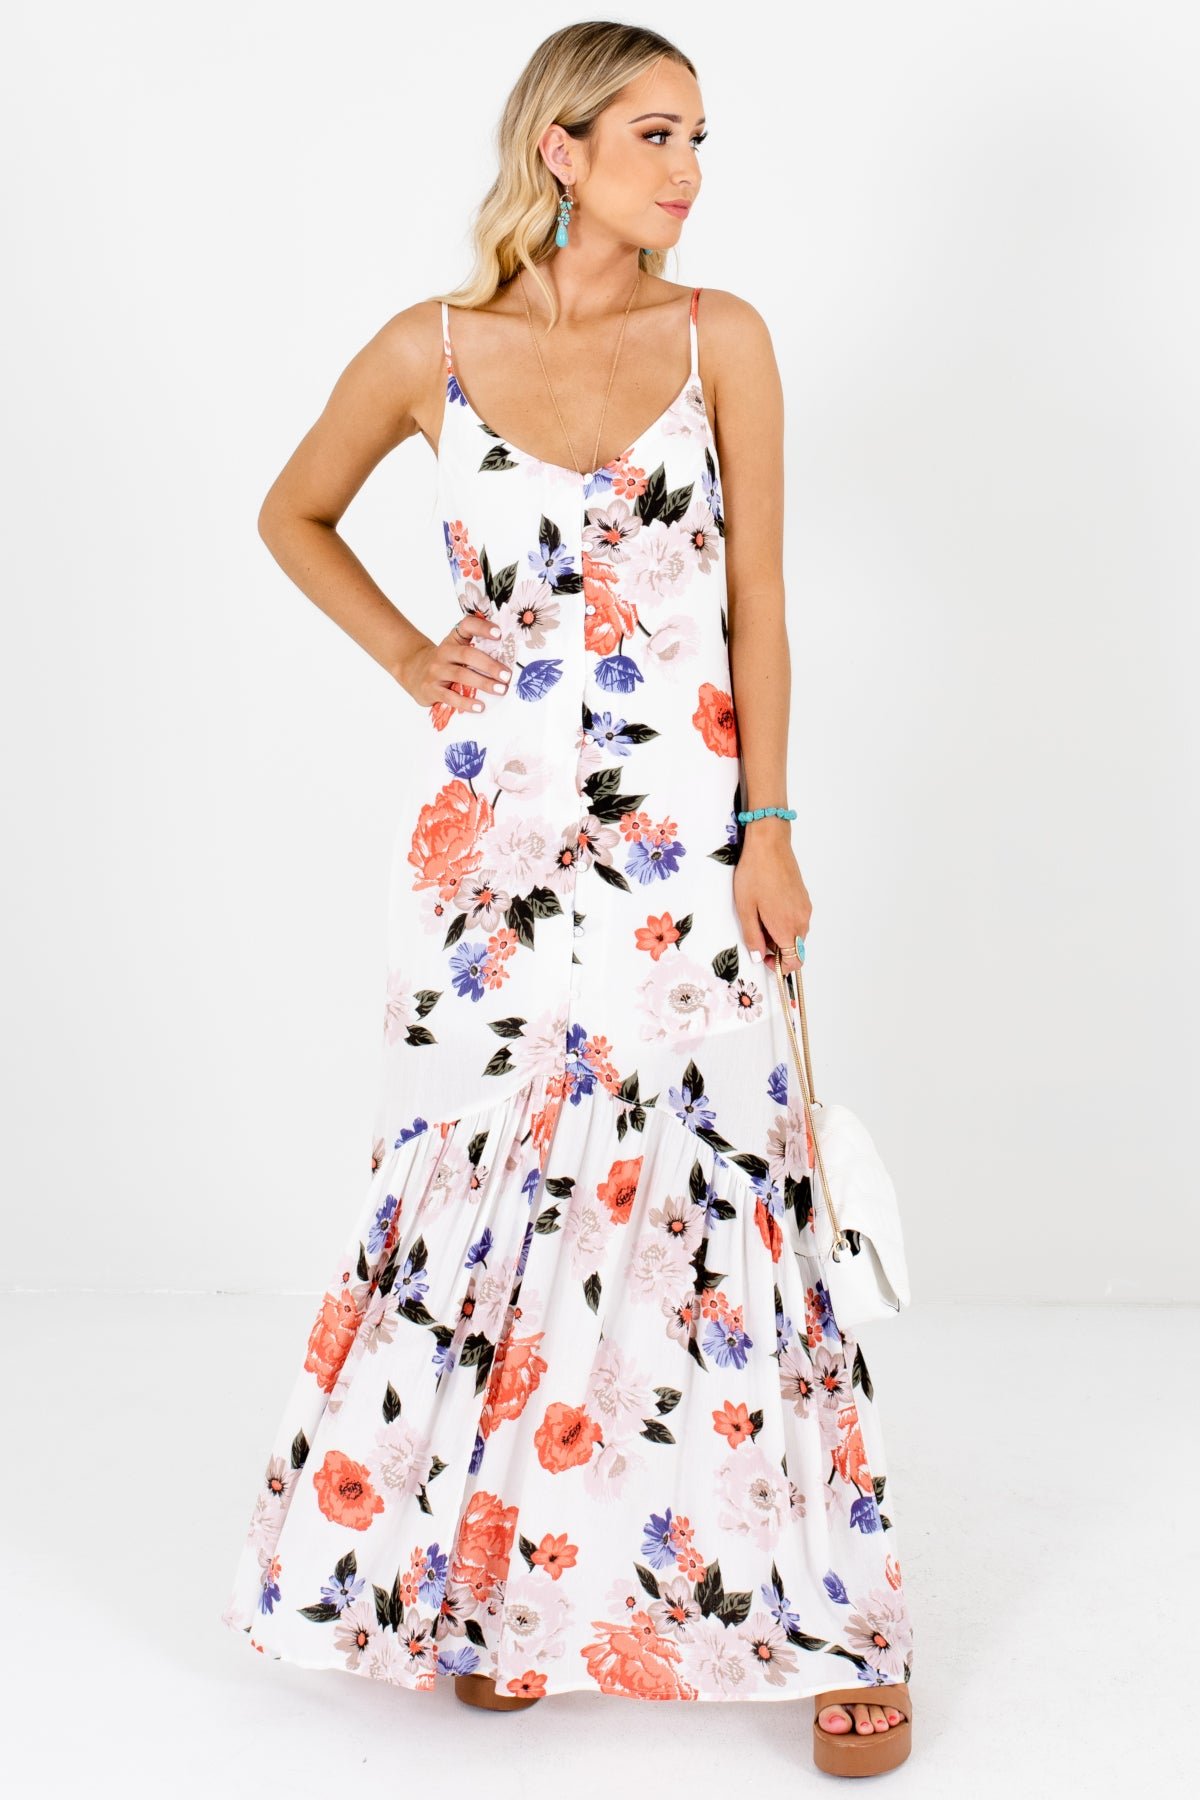 White Coral Periwinkle Blush Floral Print Button-Up Maxi Dresses